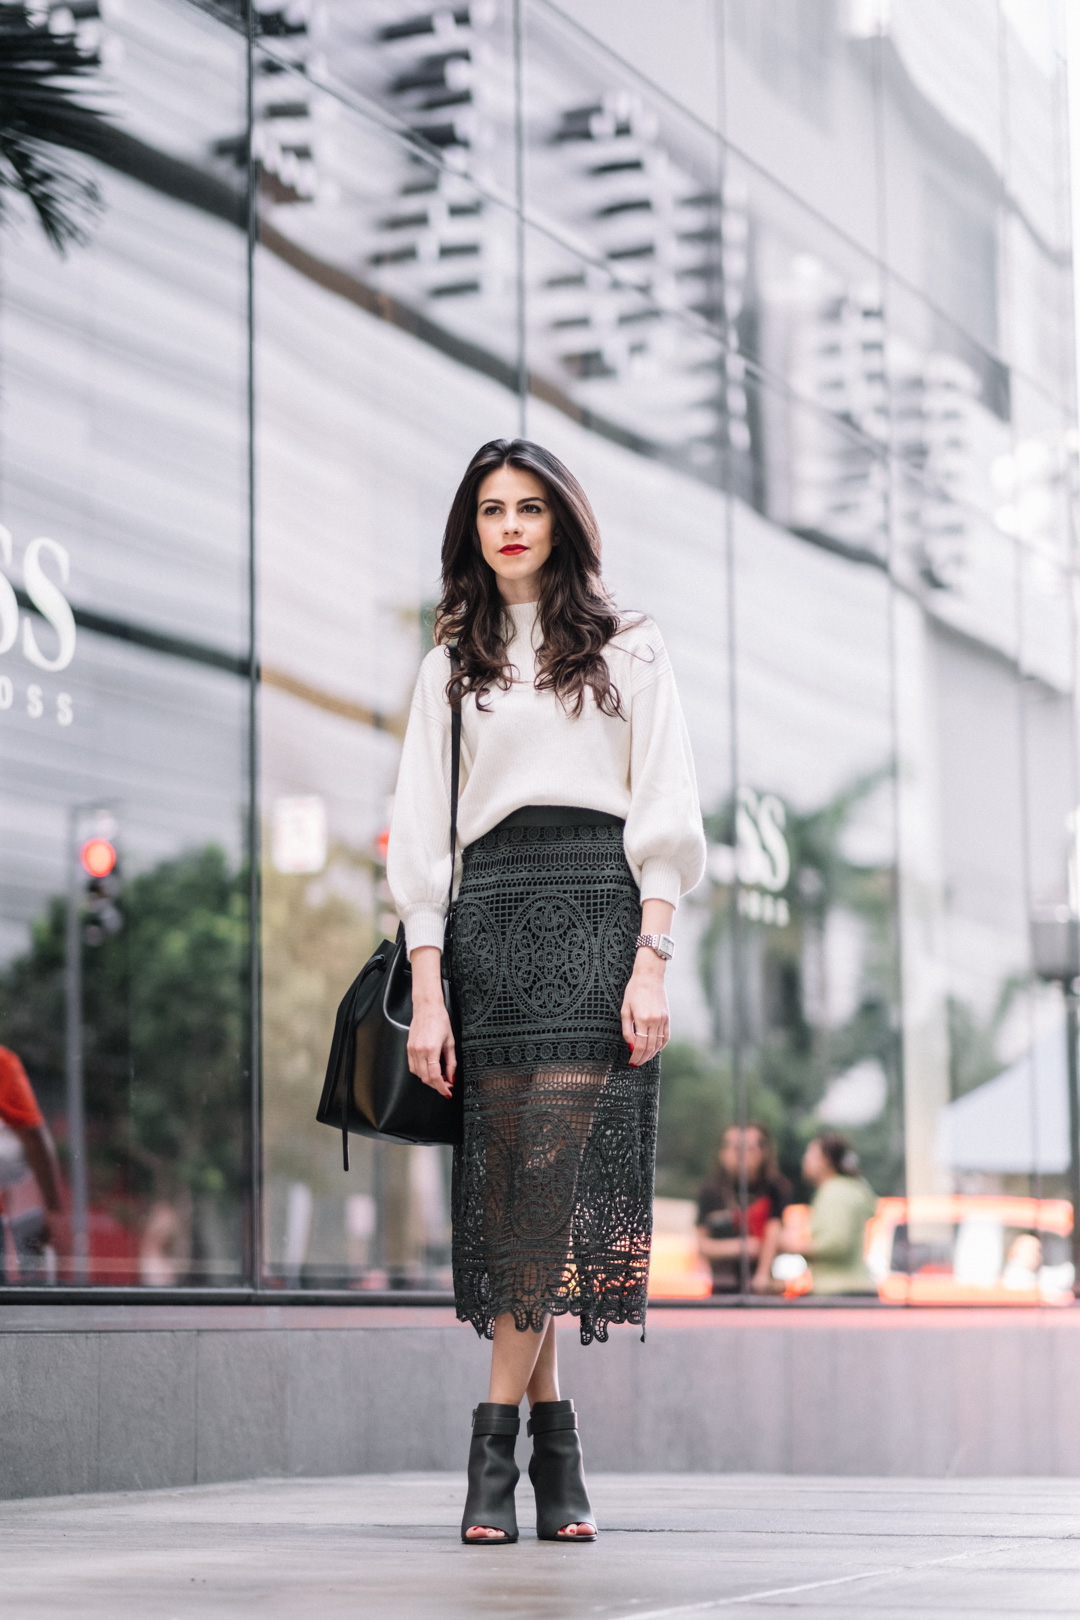 Jackie Roque styling a Topshop Lace skirt, Mansur Gavriel Bucket bag and Vince shoes